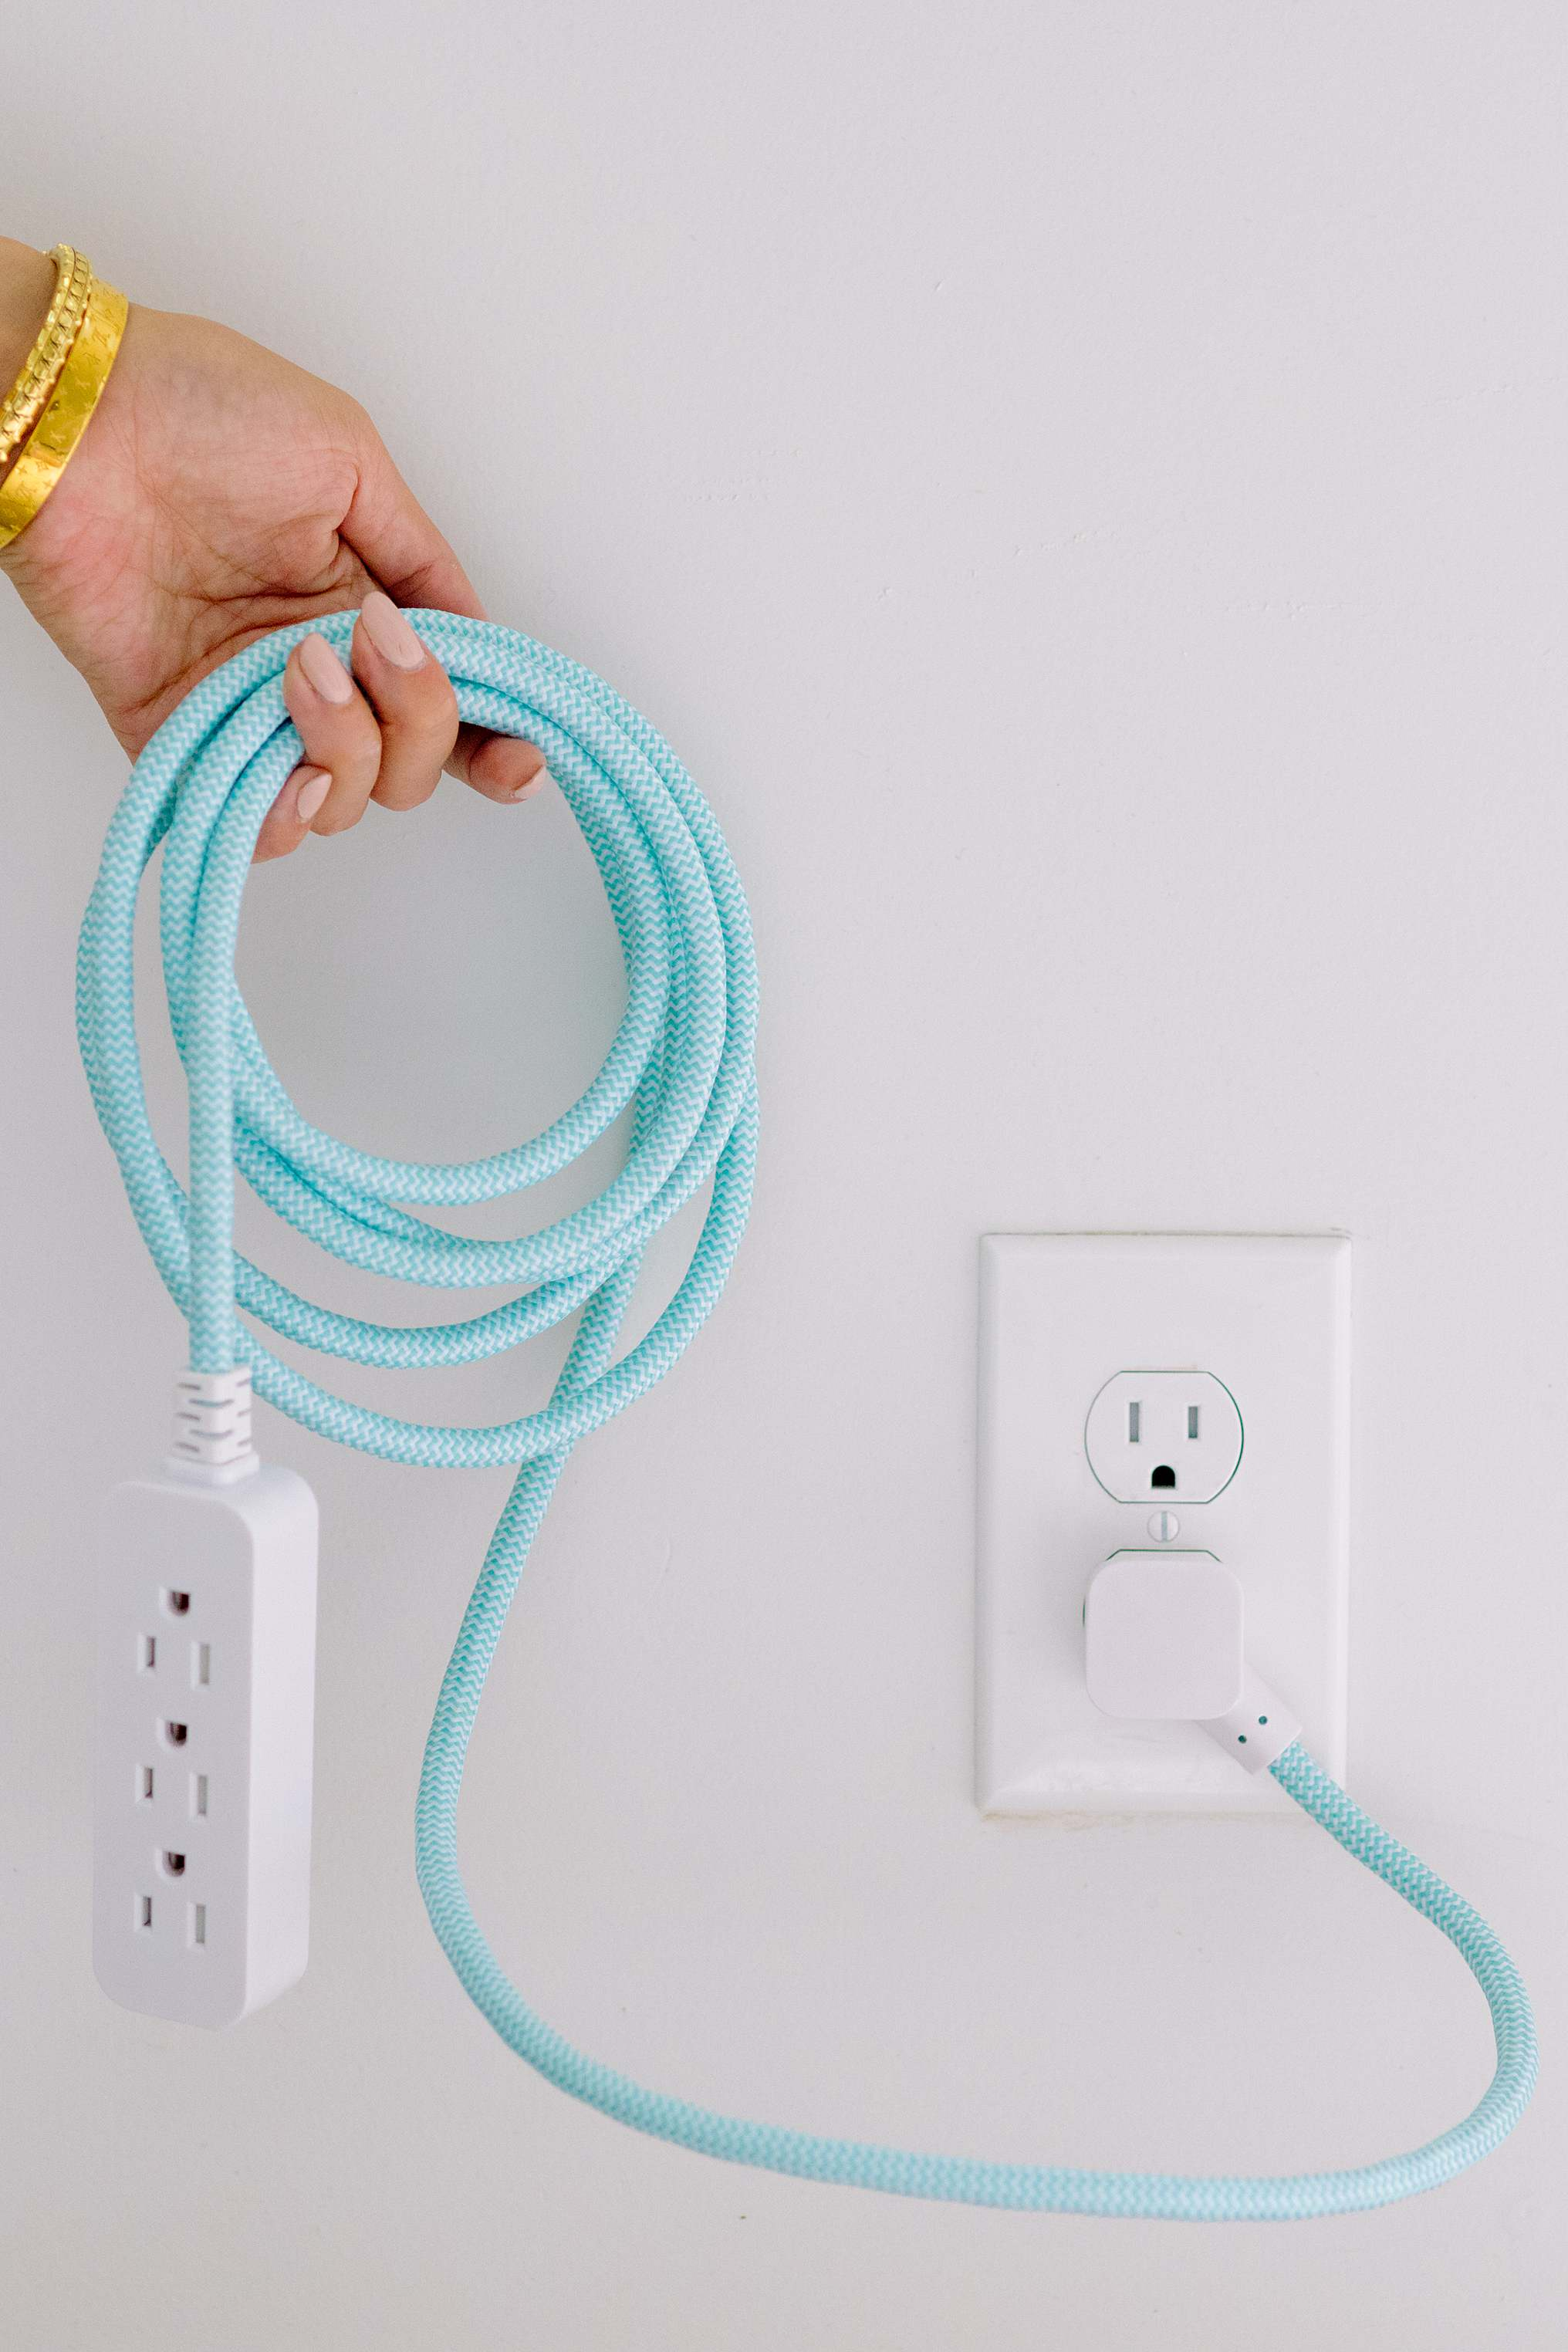 extension cord stylish blends into home decor